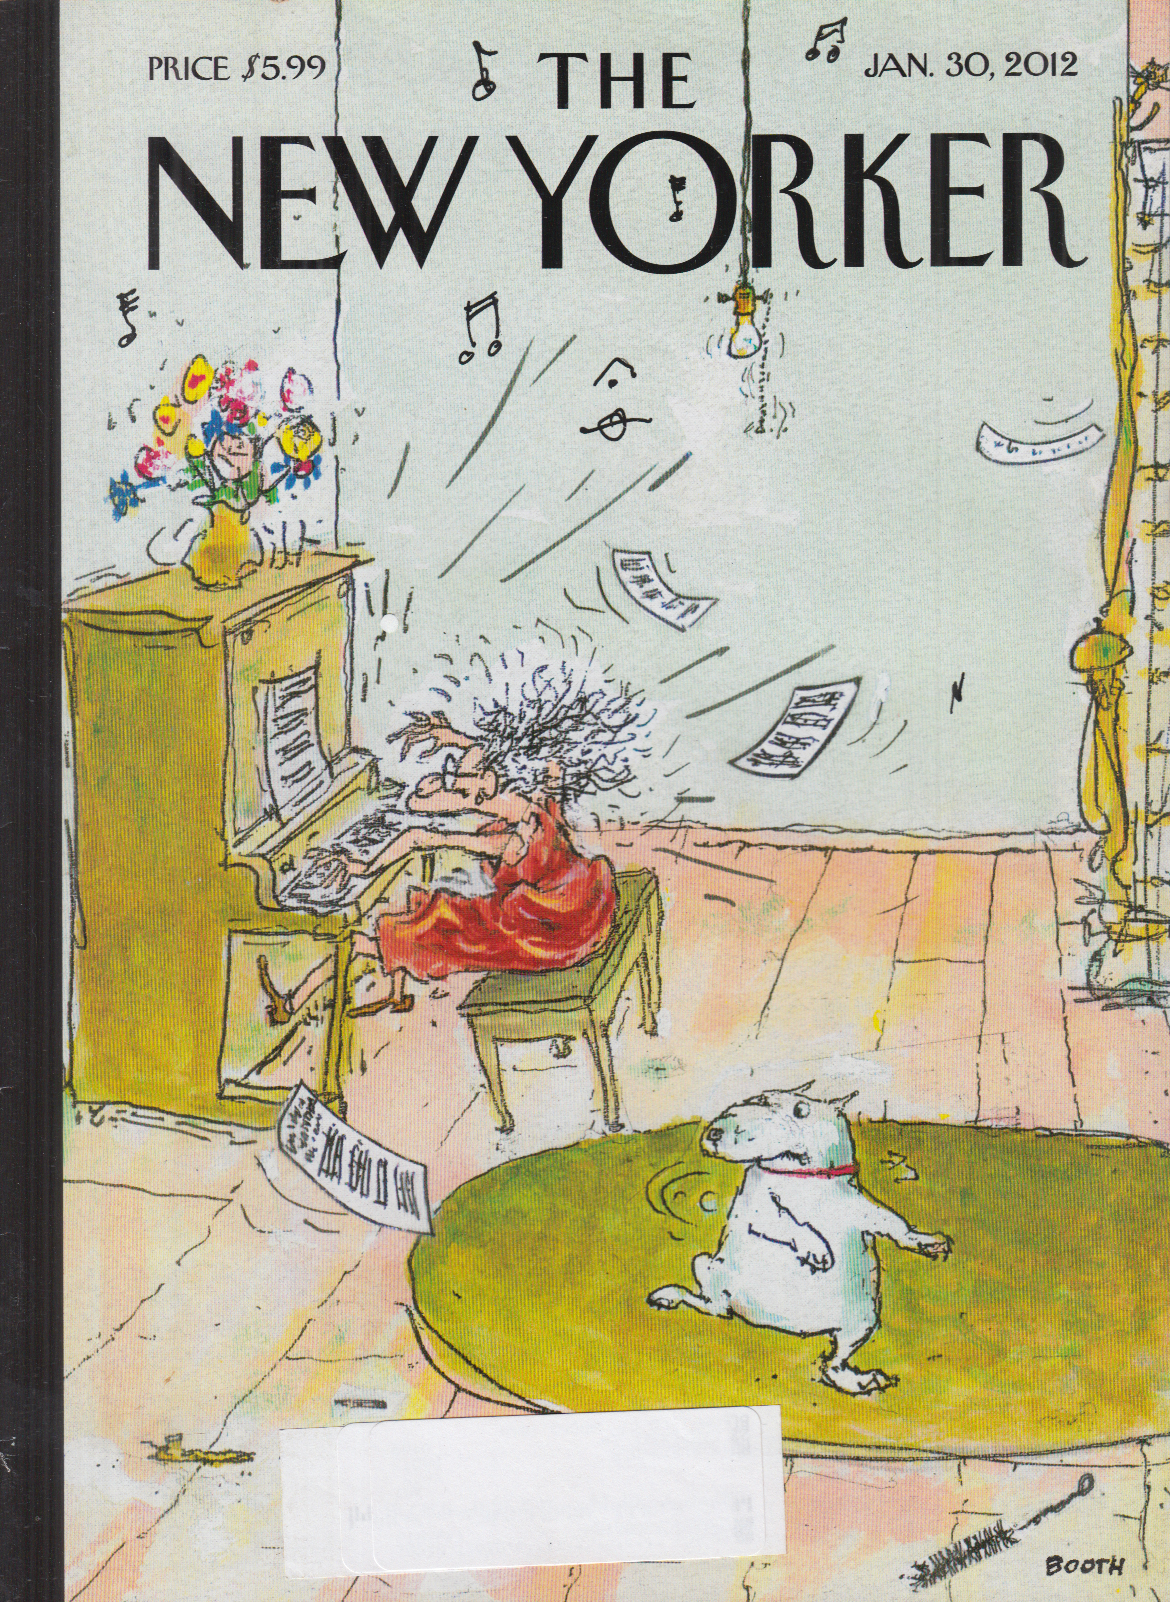 New Yorker cover Booth 1/30 2012 dog dances to frantic woman's piano solo